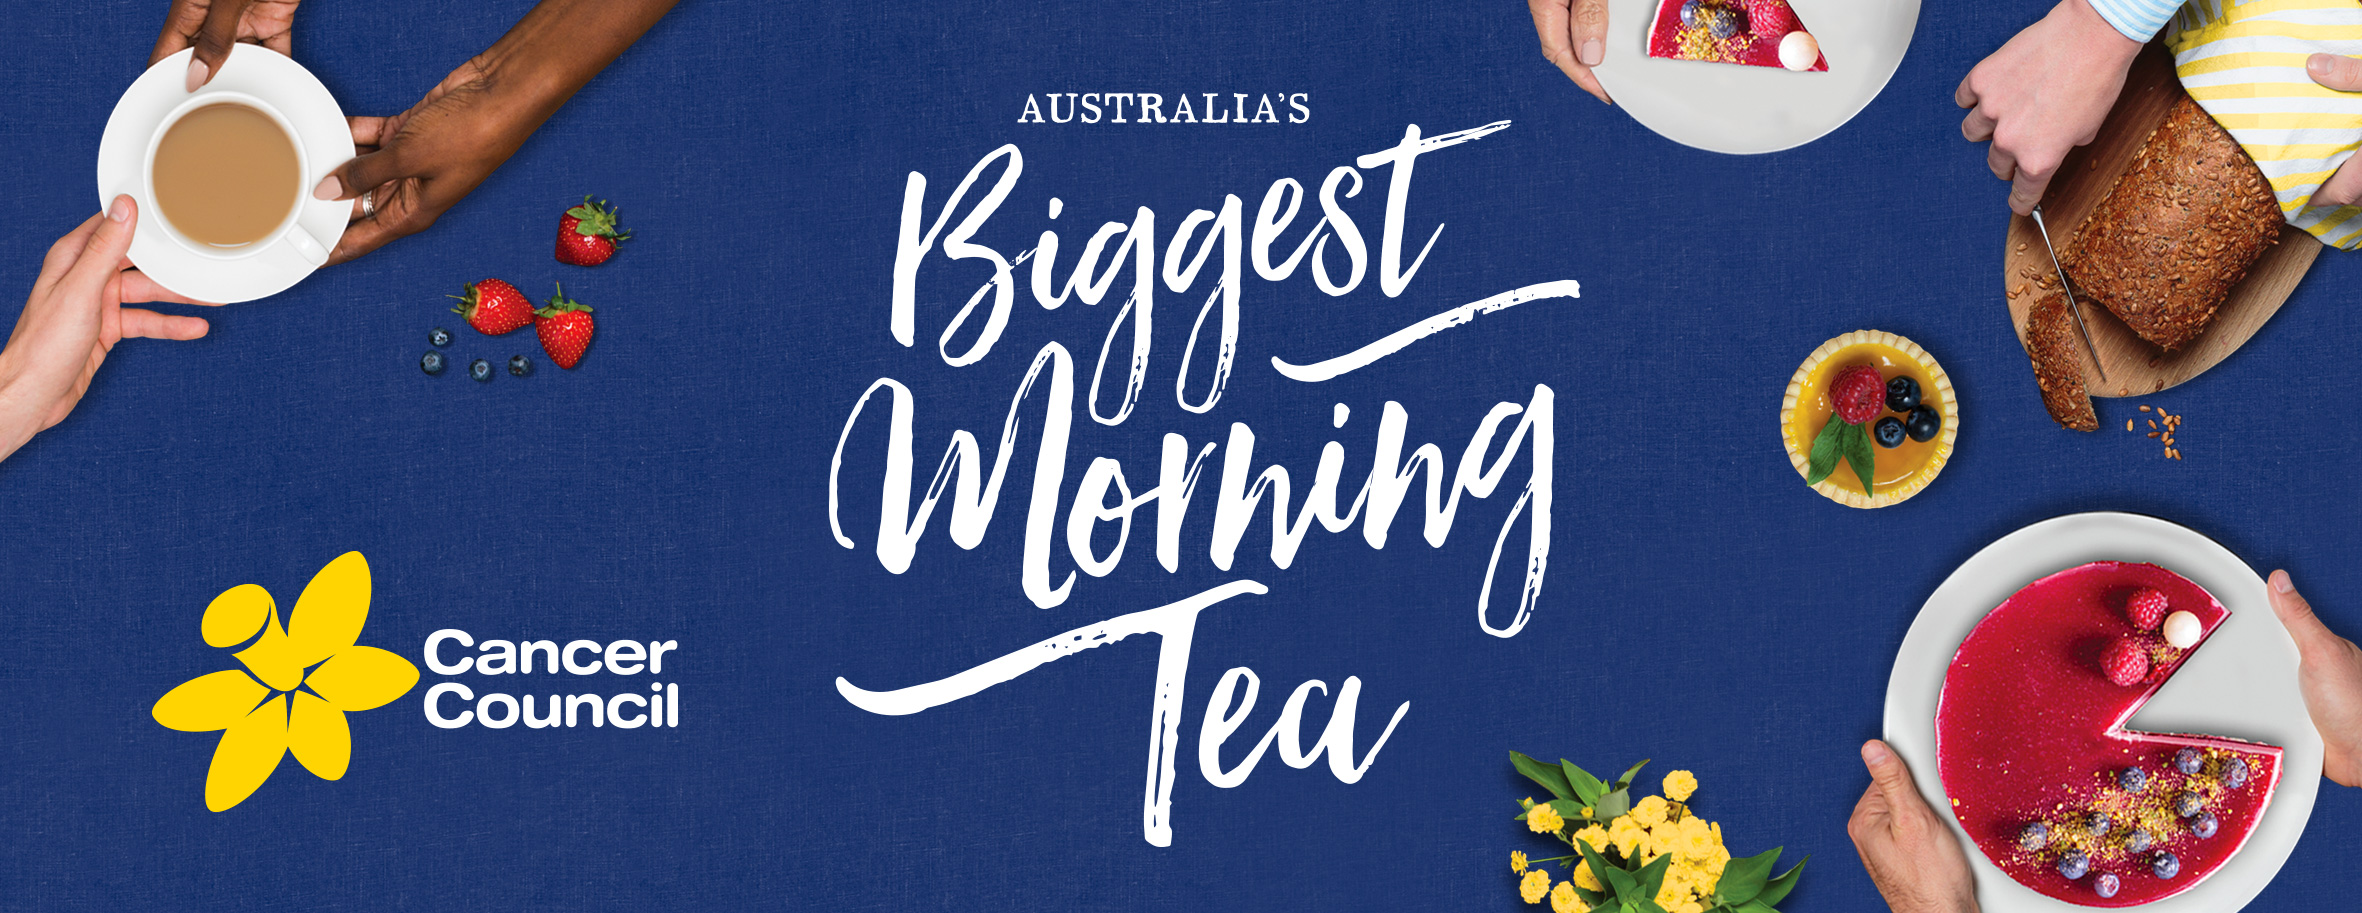 Cancer Council Biggest Morning Tea